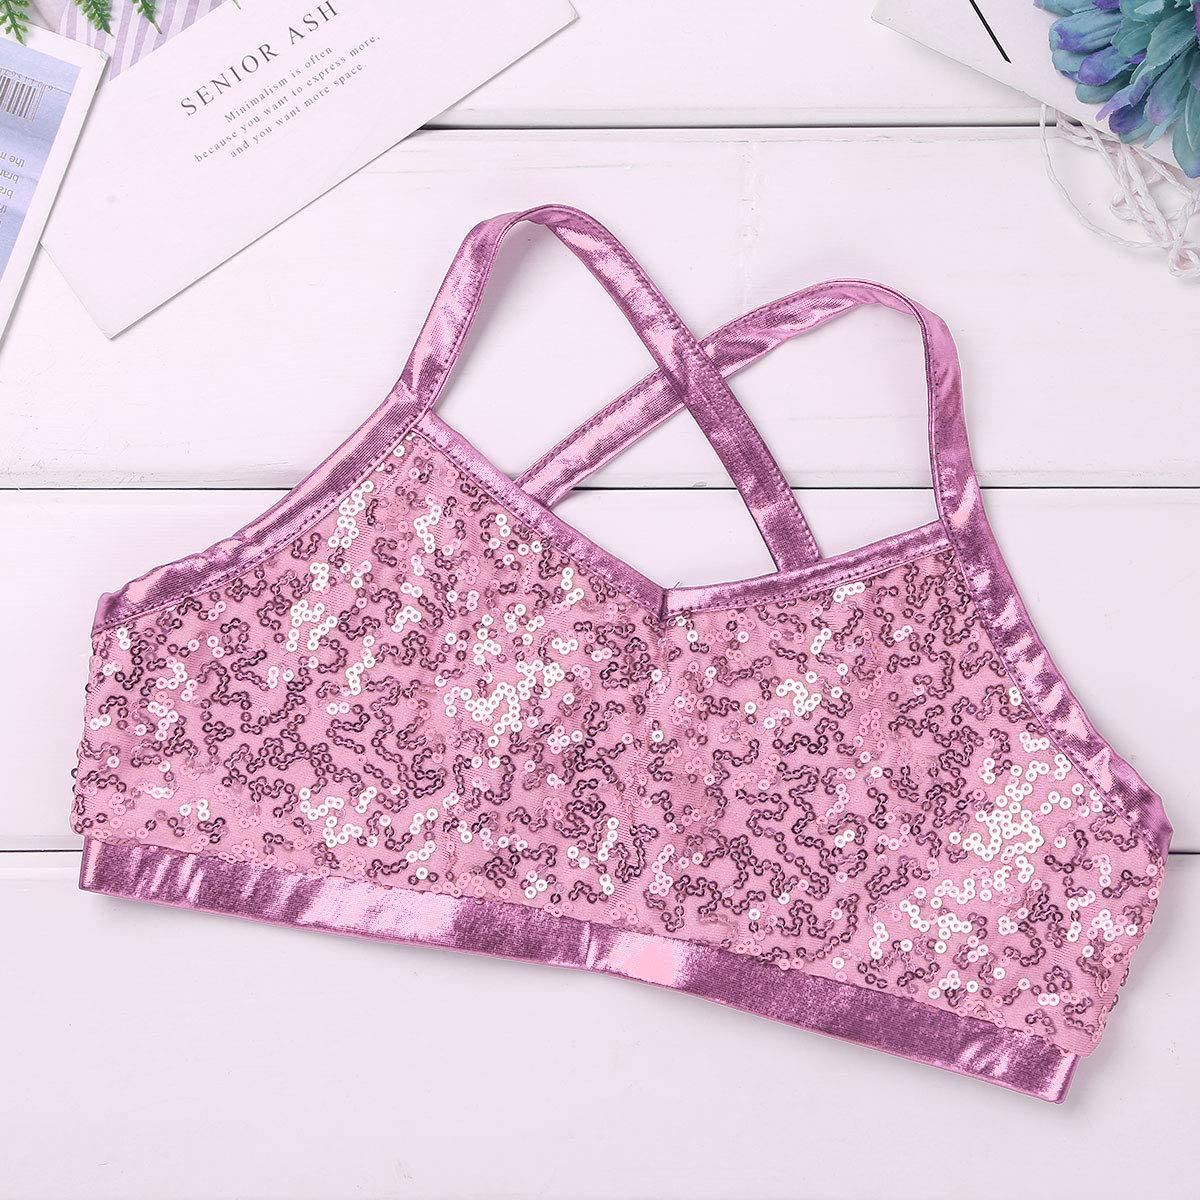 dPois 2PCS Kids Girls Ballet Dance Sports Workout Outfits Straps Shiny Sequins Tank Top with Shorts Set for Gymnastics Dancing or Swimming